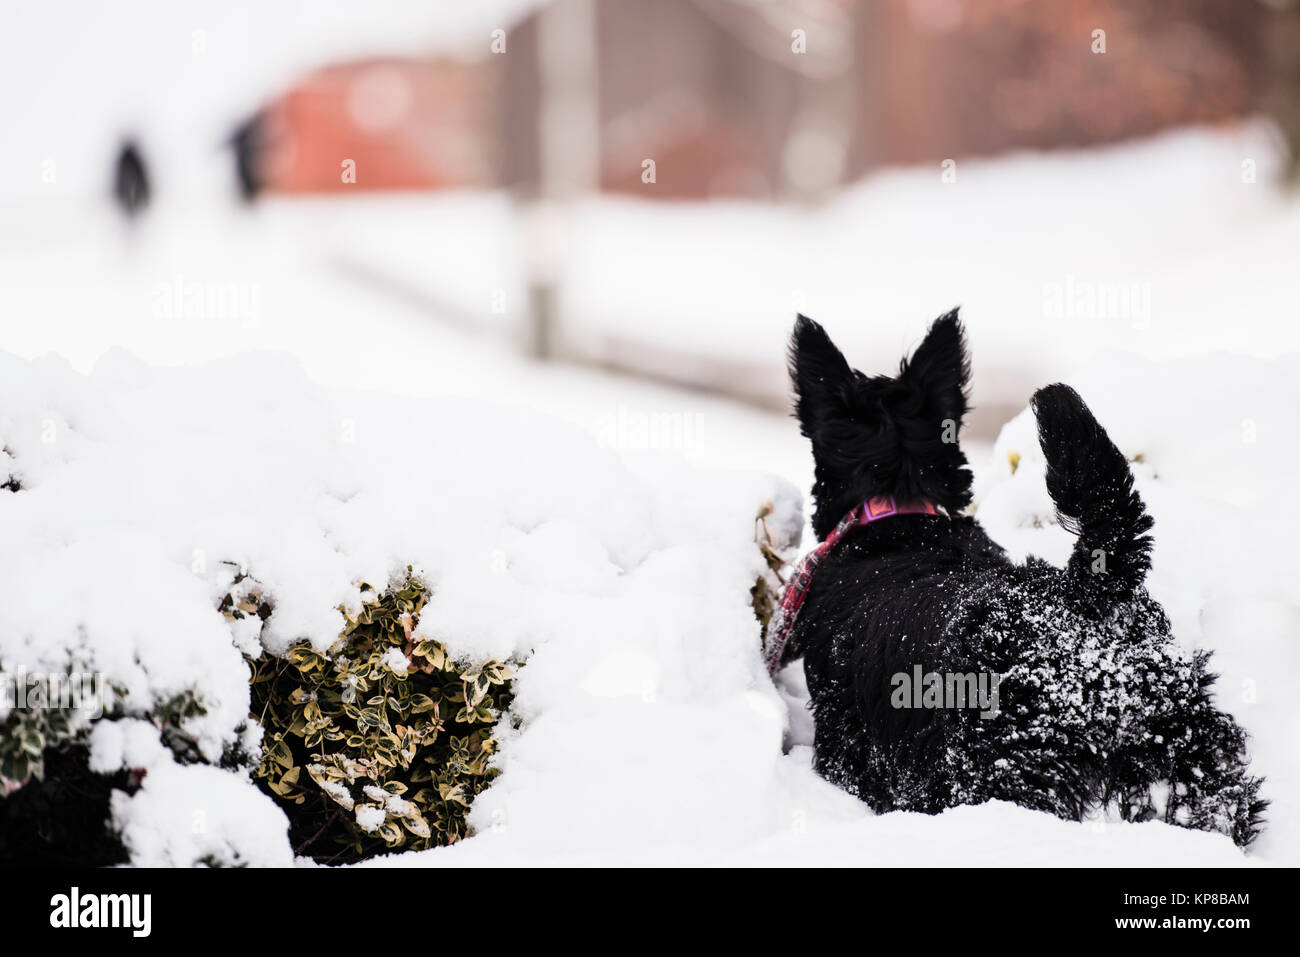 Young Scottish terrier dog enjoying her first experience of the snow. - Stock Image